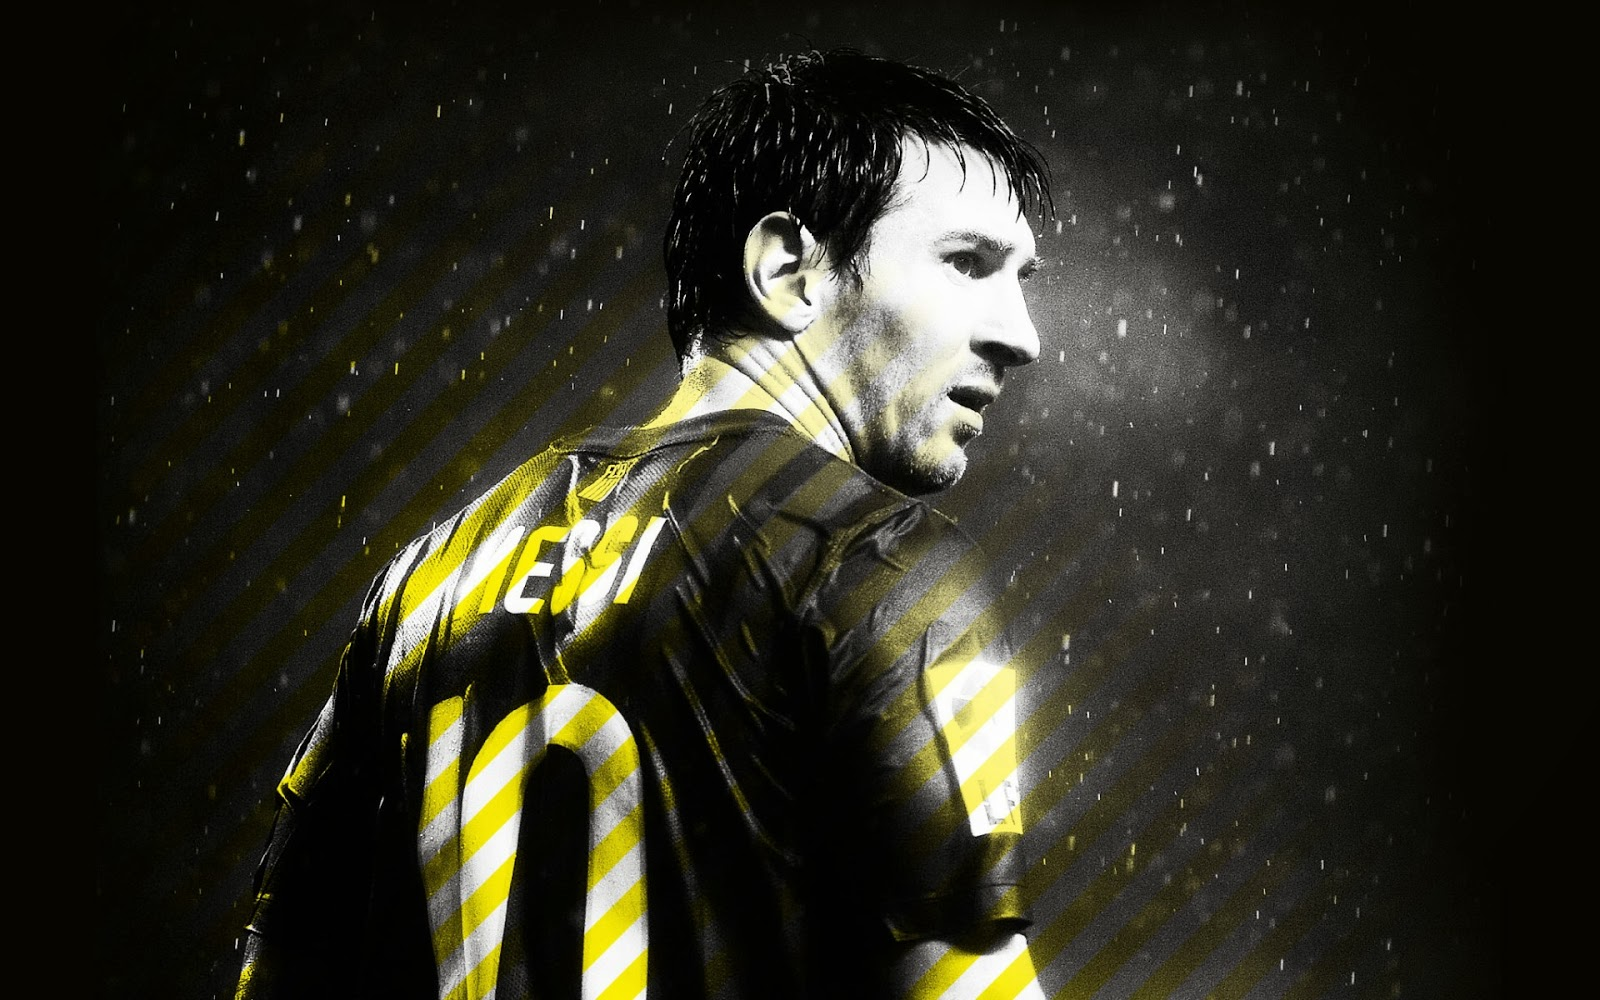 Messi Hd Wallpaper backgrounds